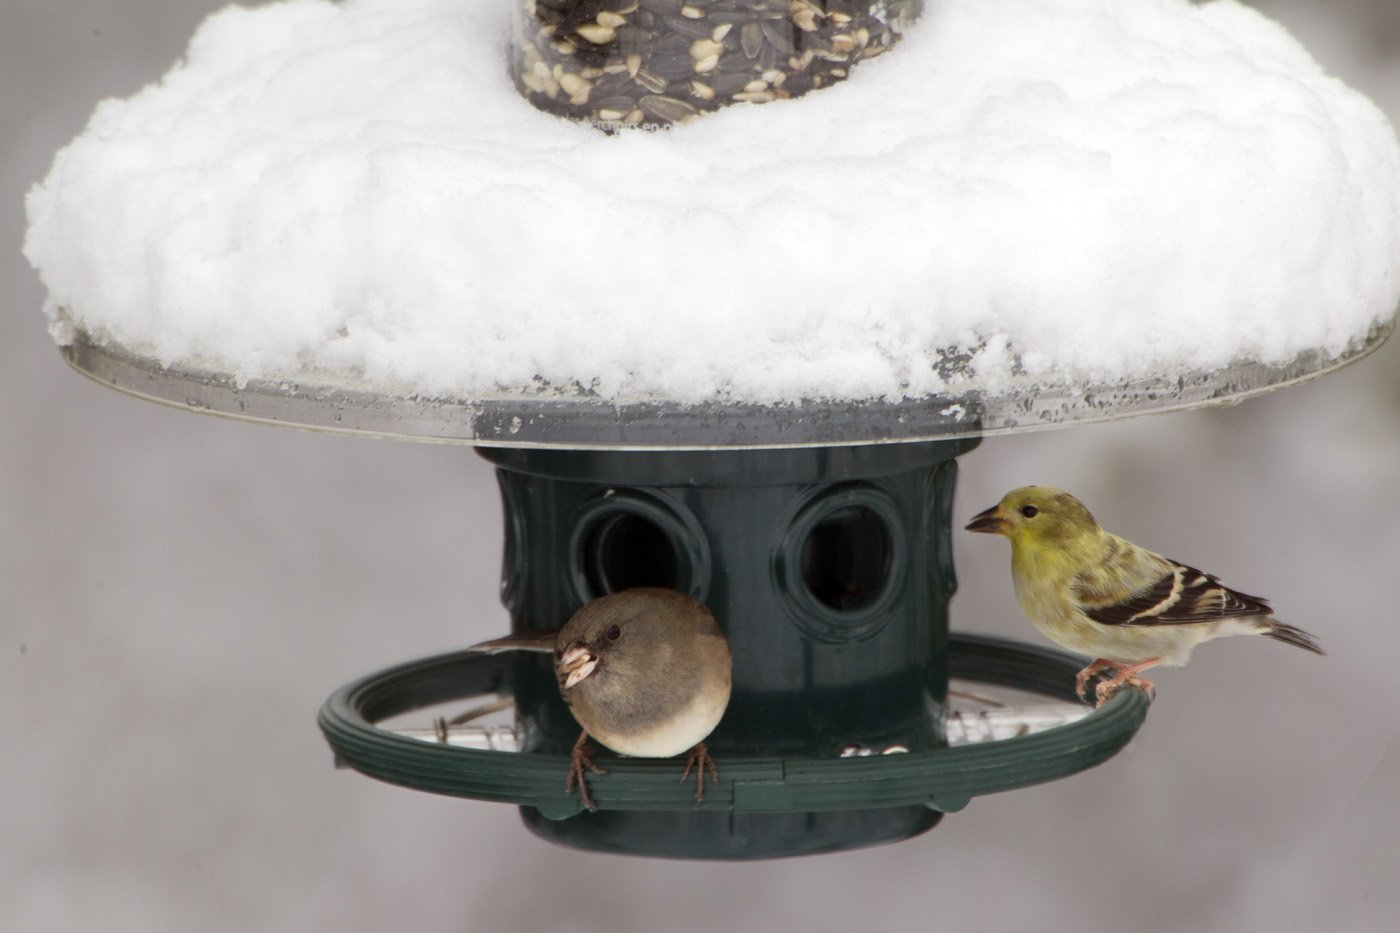 Squirrel Buster Weather Guard for the Squirrel Buster Plus Bird Feeder (feeder NOT included)